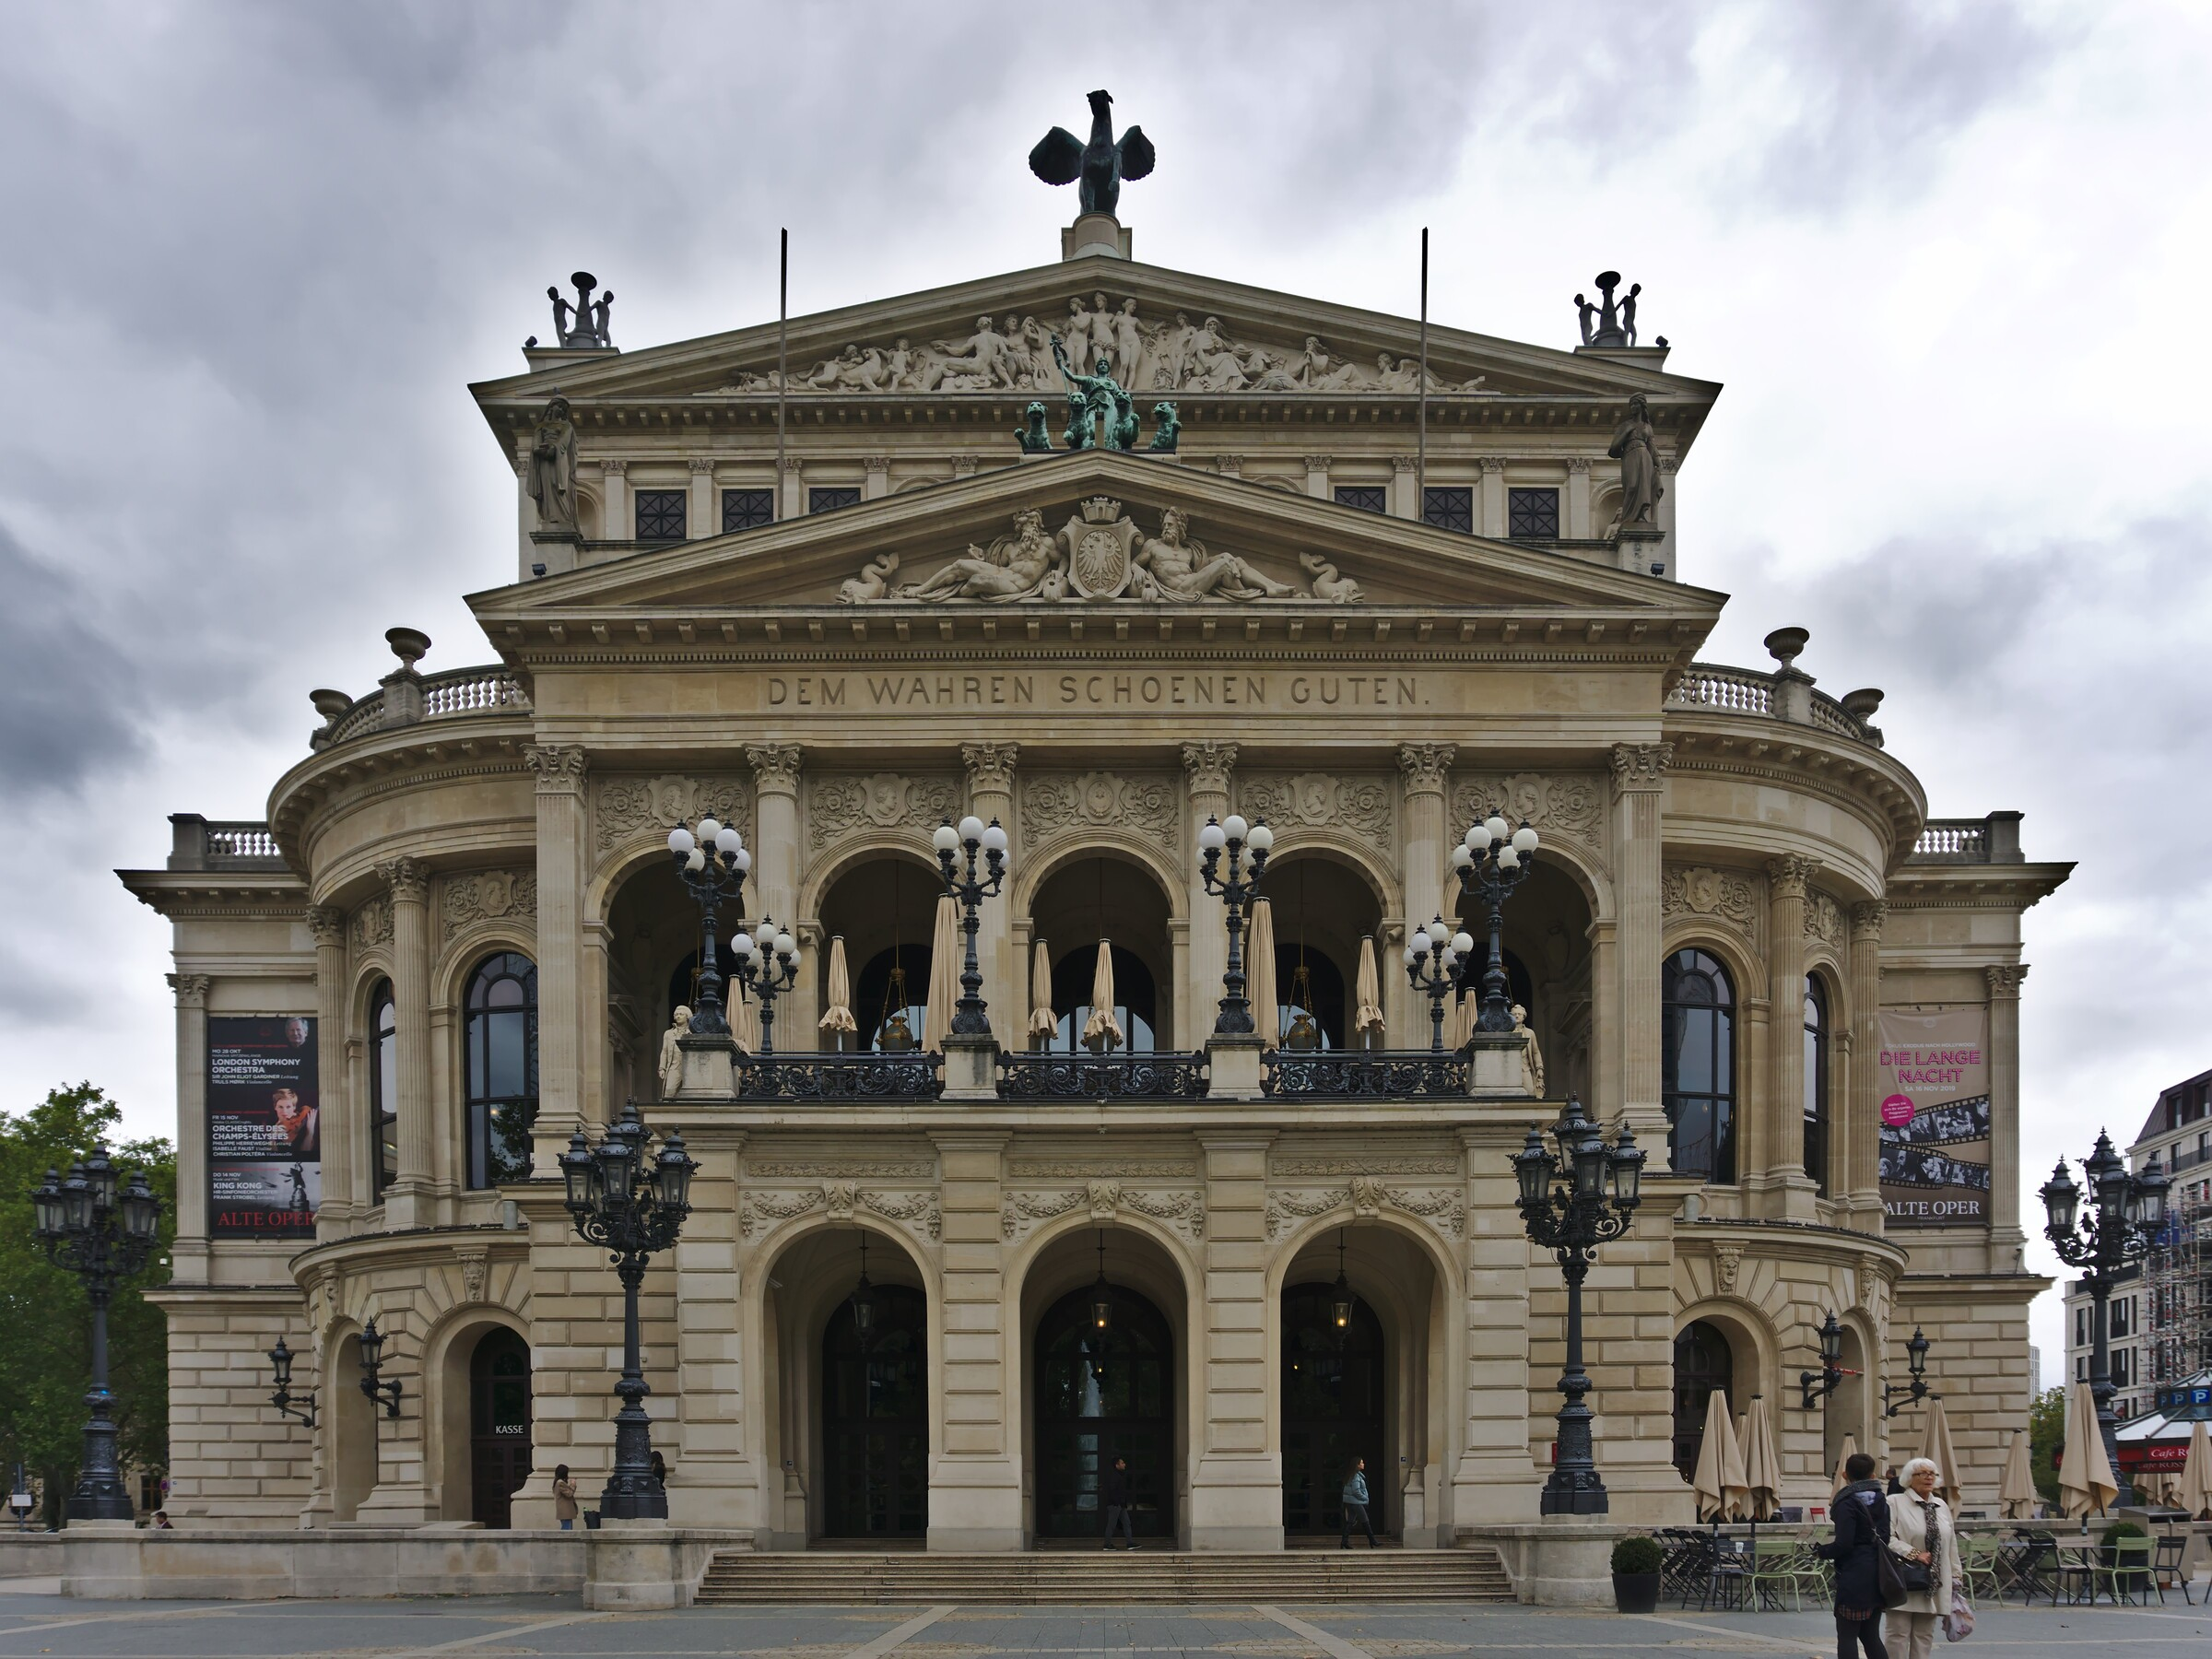 res/article/frankfurt/alte-oper.jpg